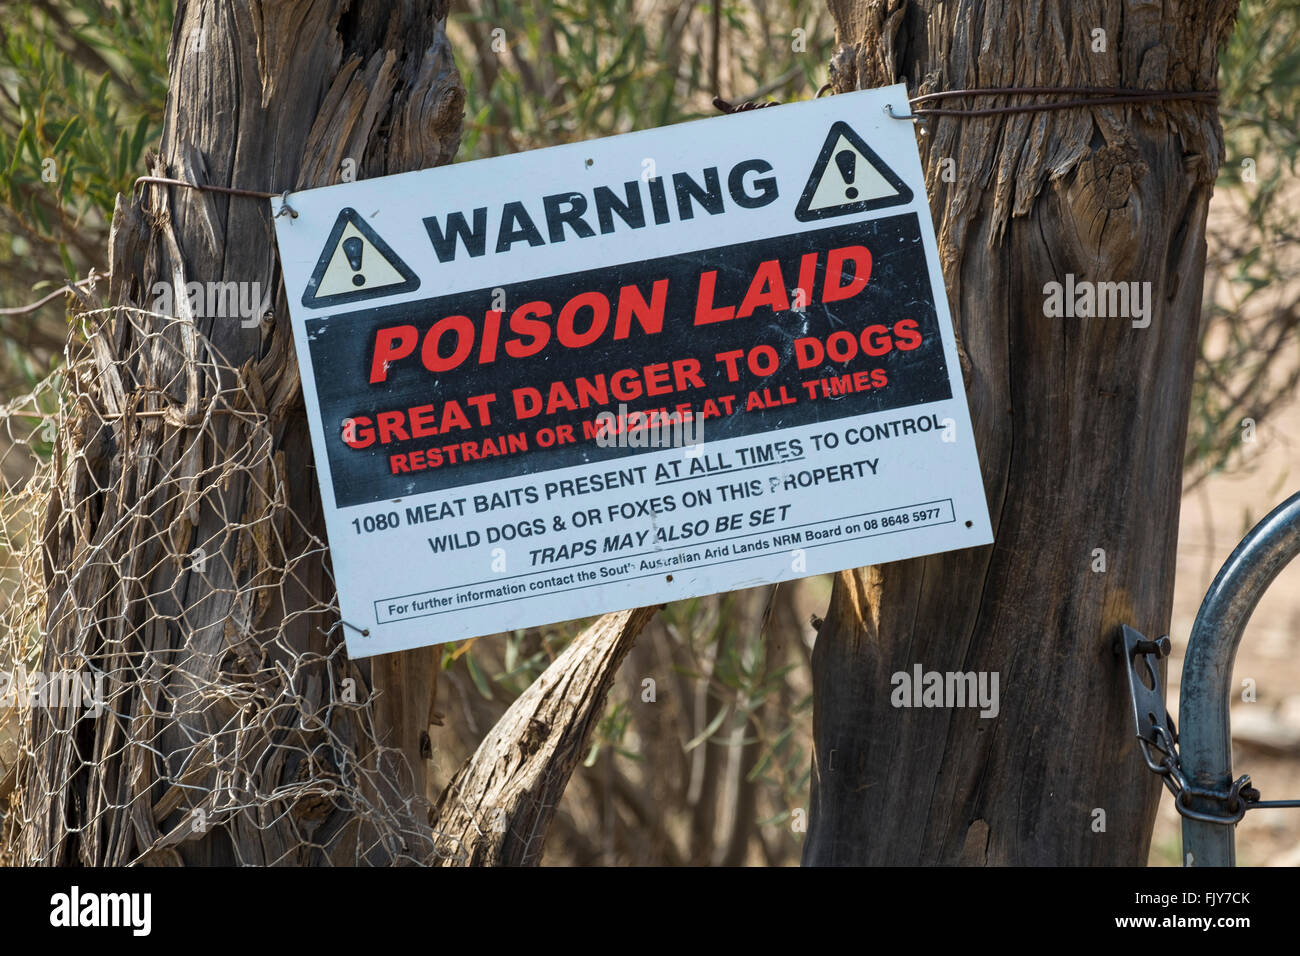 Poison bait for wild dogs and foxes warning sign in the Flinders Ranges in South Australia - Stock Image